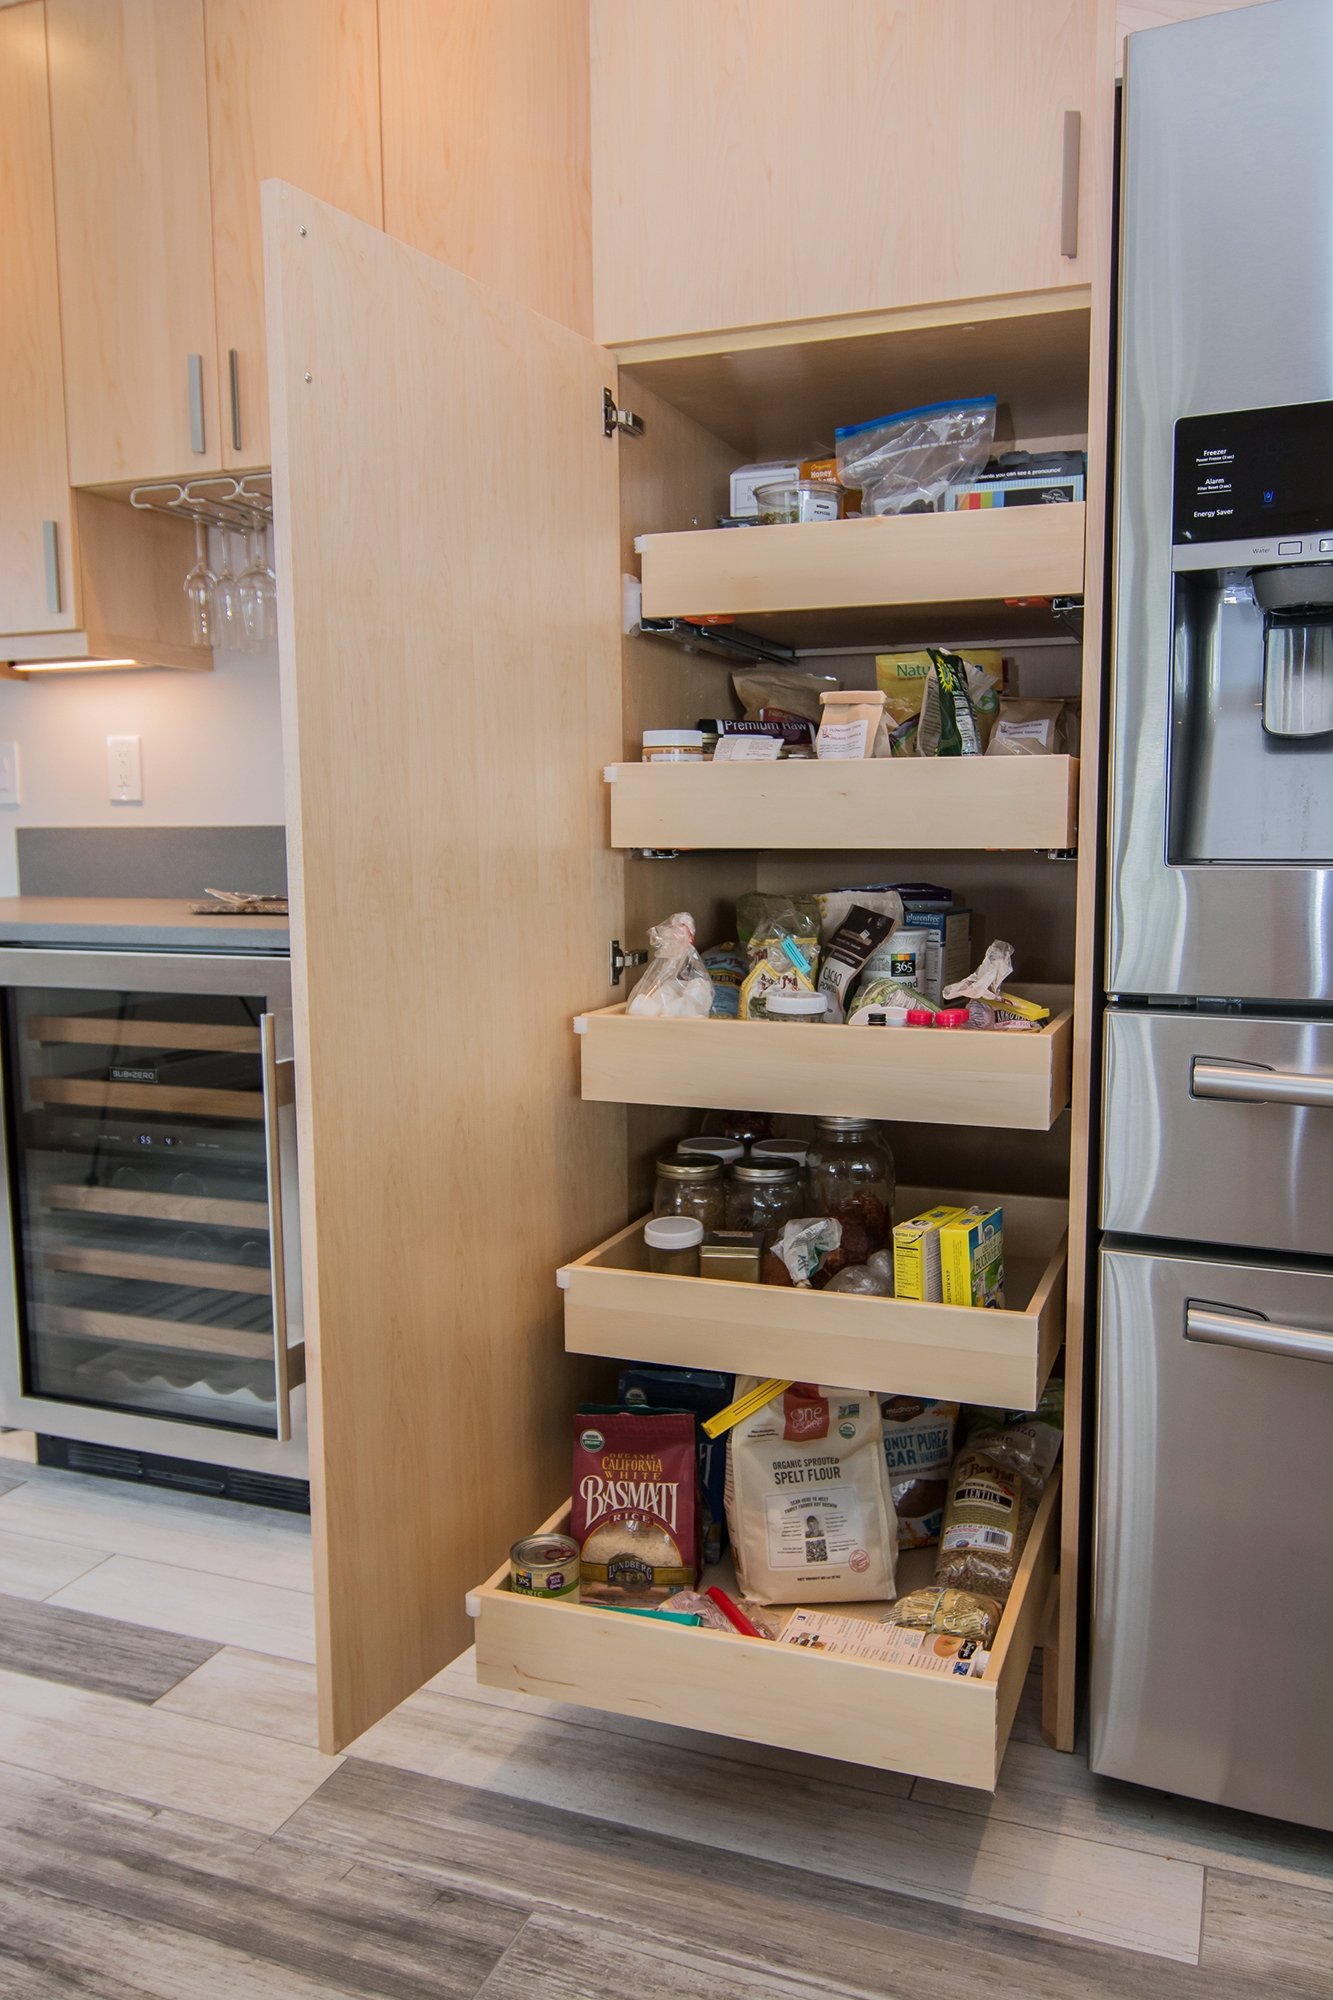 Kitchen Cabinets in Natural Maple by ShowplaceEVO - view 10